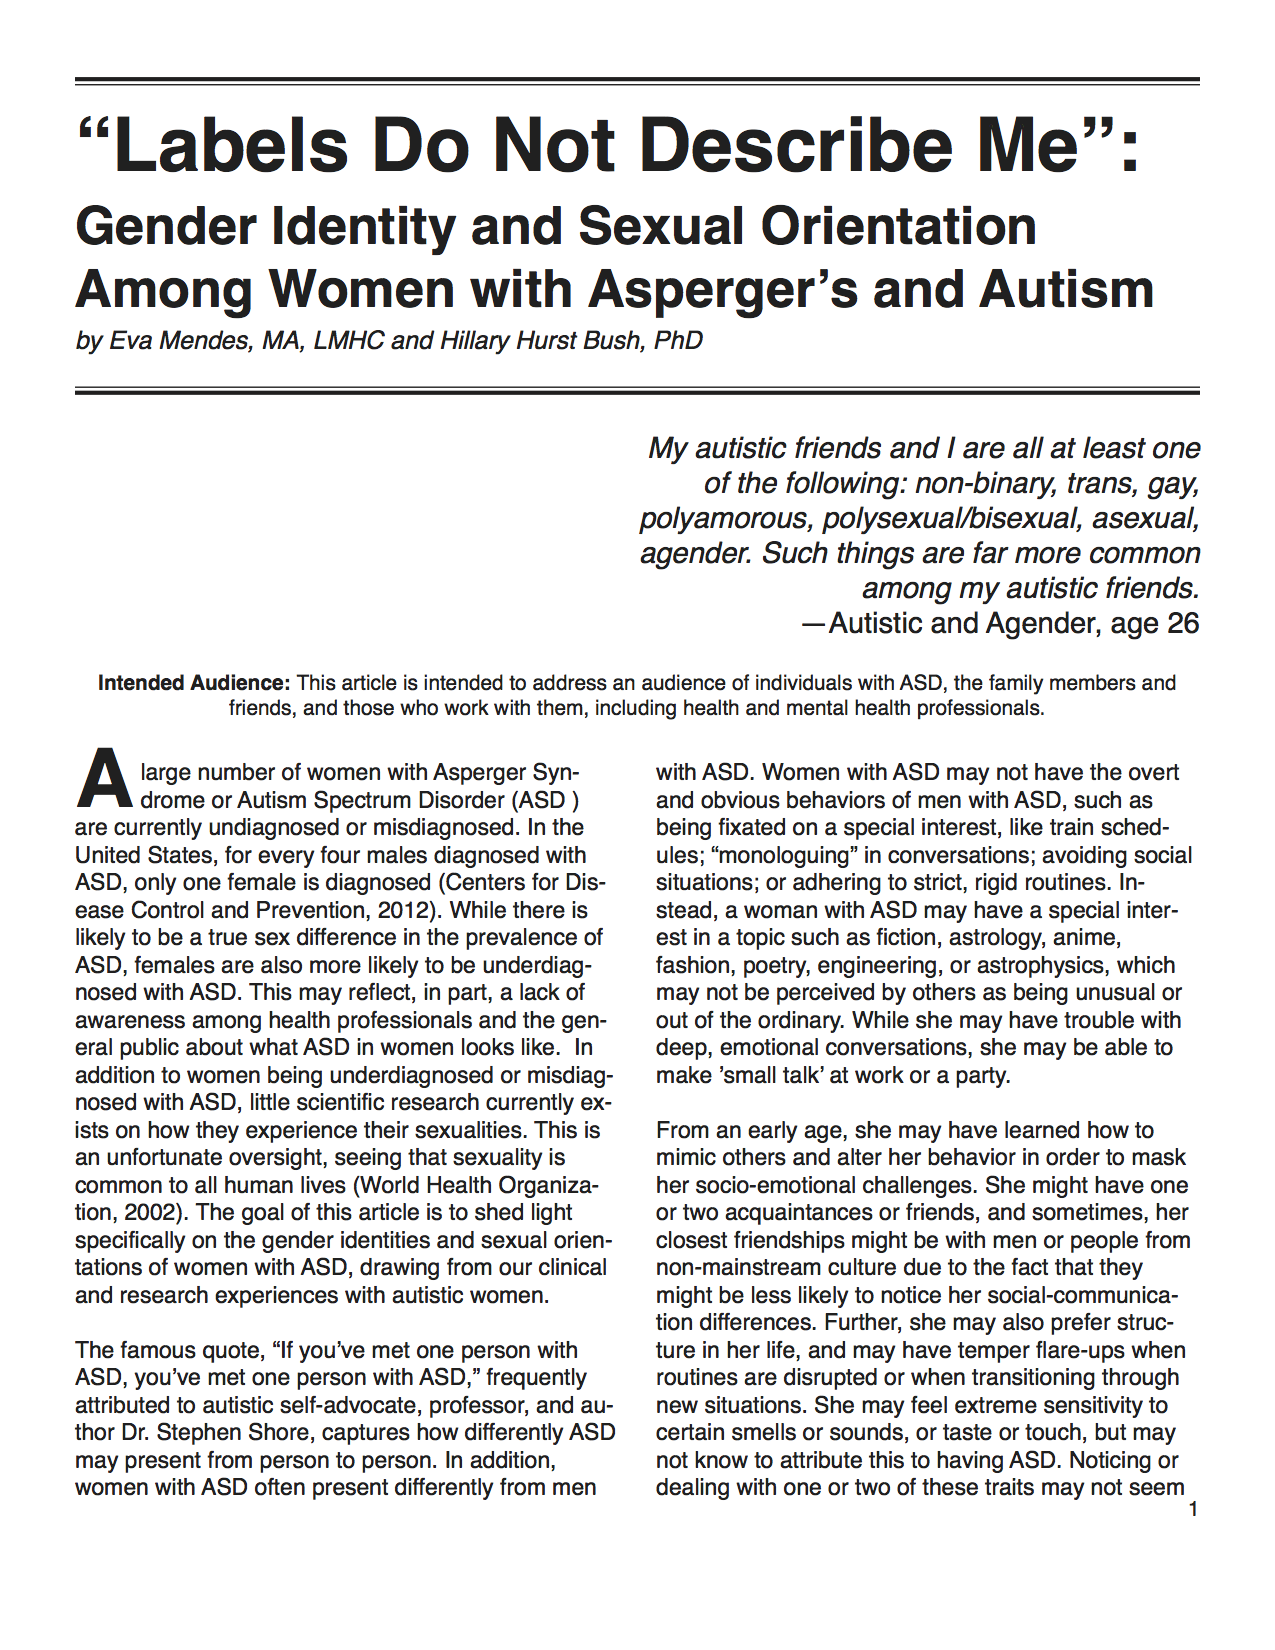 Eva Mendes and Hillary Hurst Bush paper on gender identity and sexual orientation for women with Asperger's and autism spectrum disorder